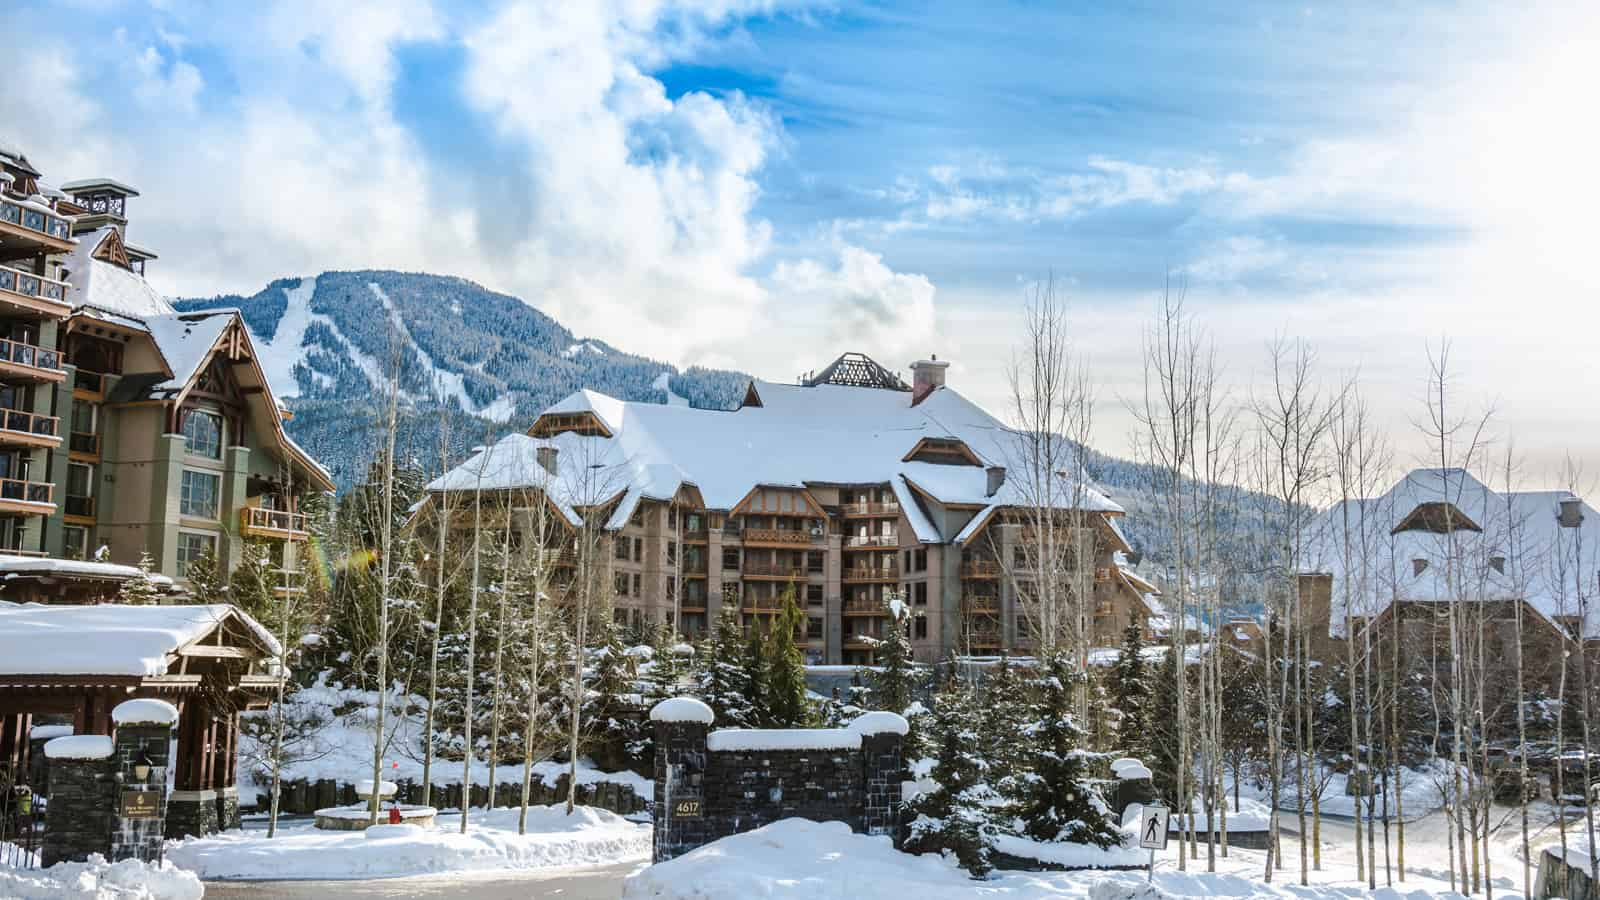 EcoLux☆Lifestyle: Four Seasons Whistler Modernizes the Classic Ski Lodge